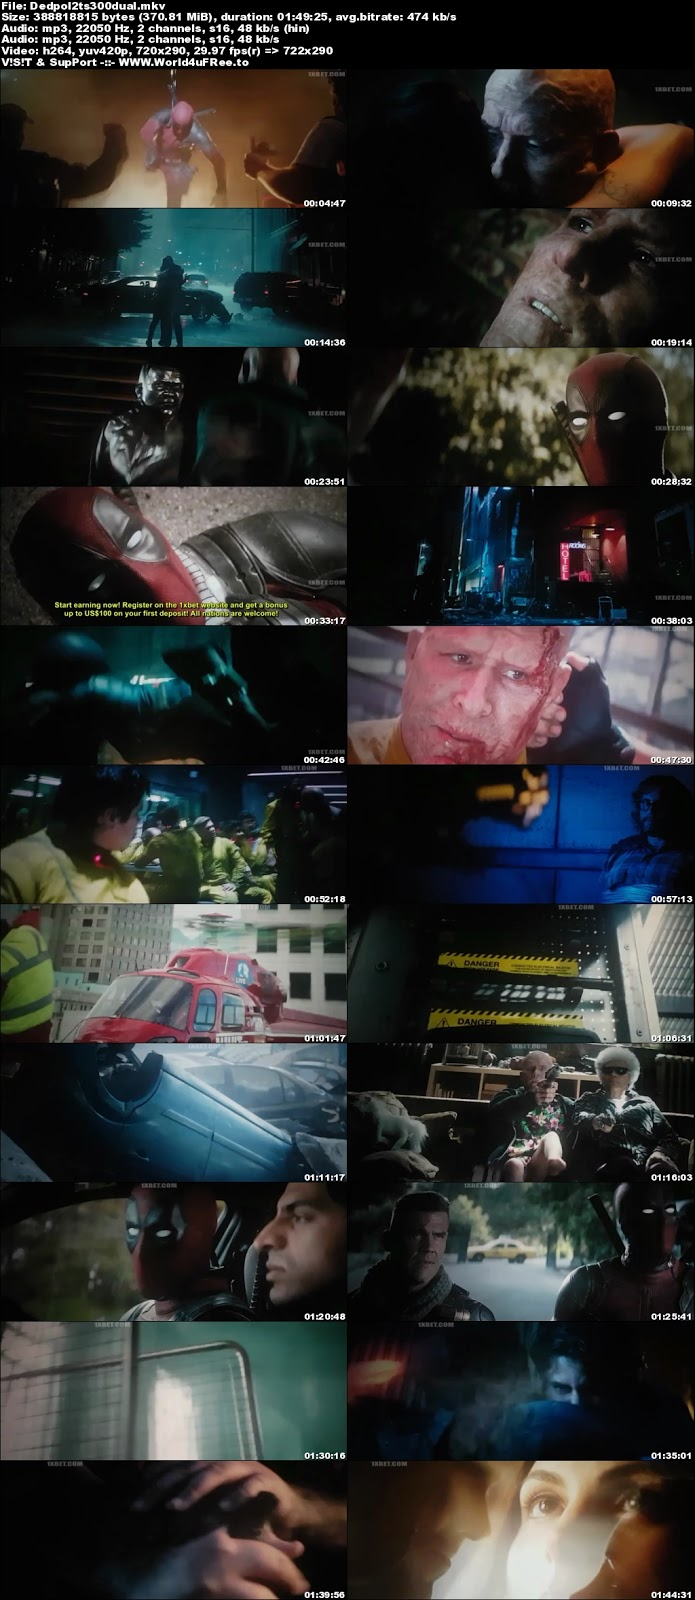 Deadpool 2 2018 Dual Audio TSRip 480p 350mb world4ufree.to hollywood movie Deadpool 2 2018 hindi dubbed dual audio 480p brrip bluray compressed small size 300mb free download or watch online at world4ufree.to